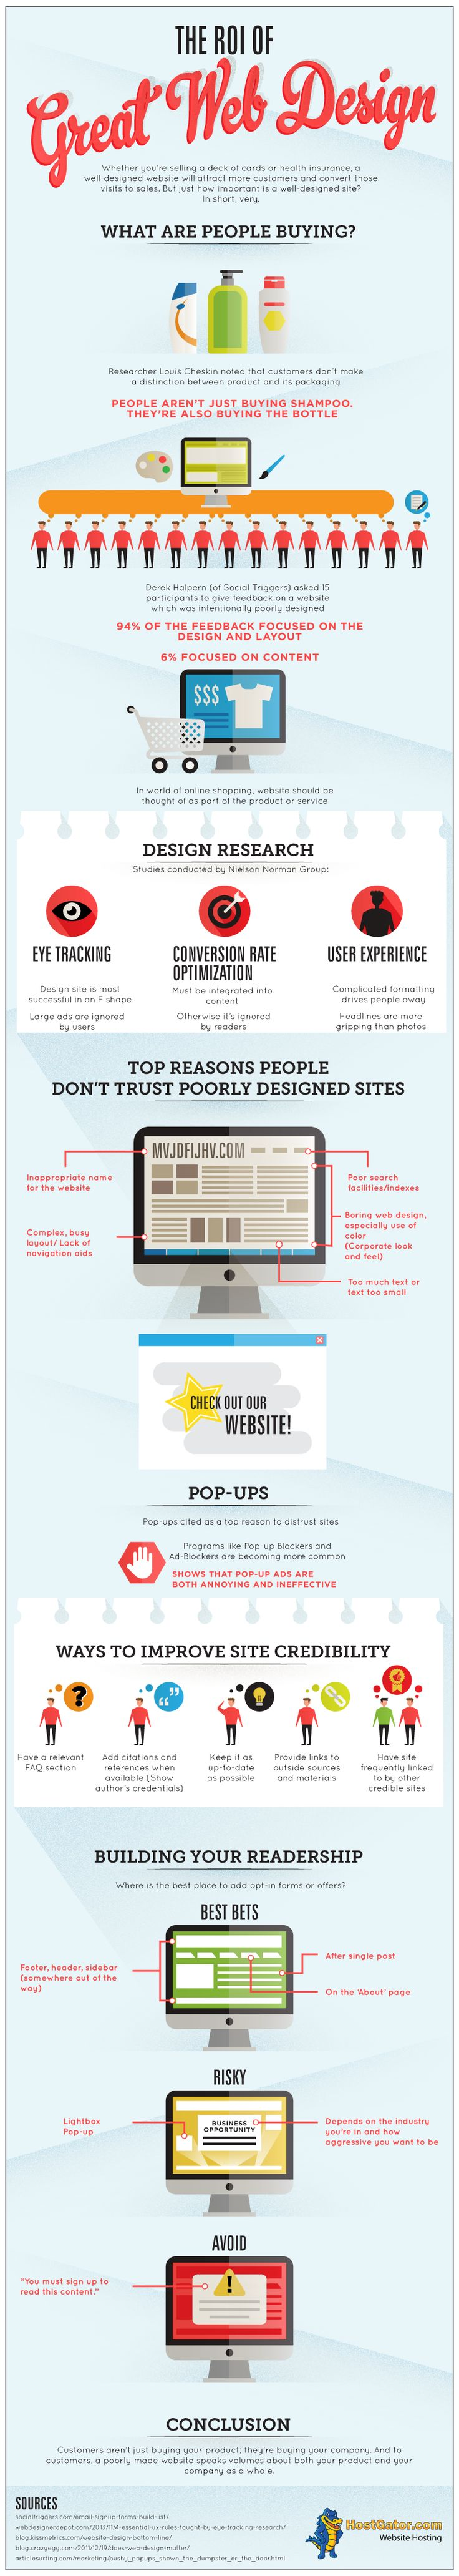 It's fairly important to determine the ROI (return on investment) for all aspects of your business. It's possible you haven't considered the implications of how this applies to your overall website design. The following #infographic addresses that very circumstance.